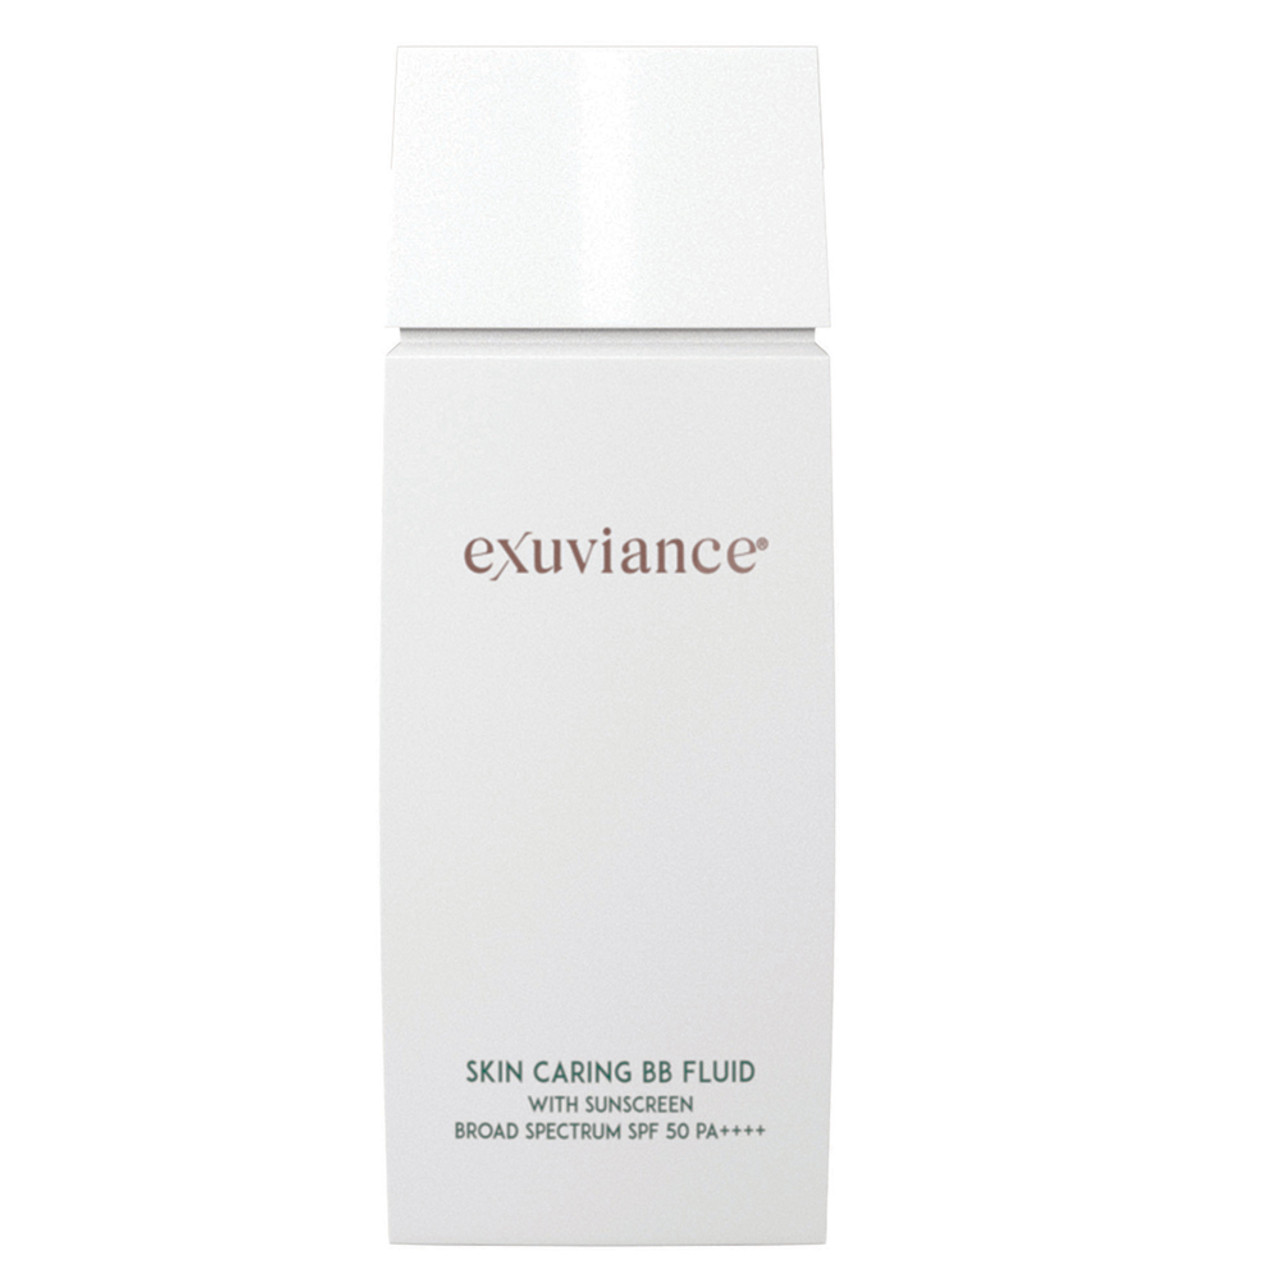 Exuviance Skin Caring BB Fluid SPF 50